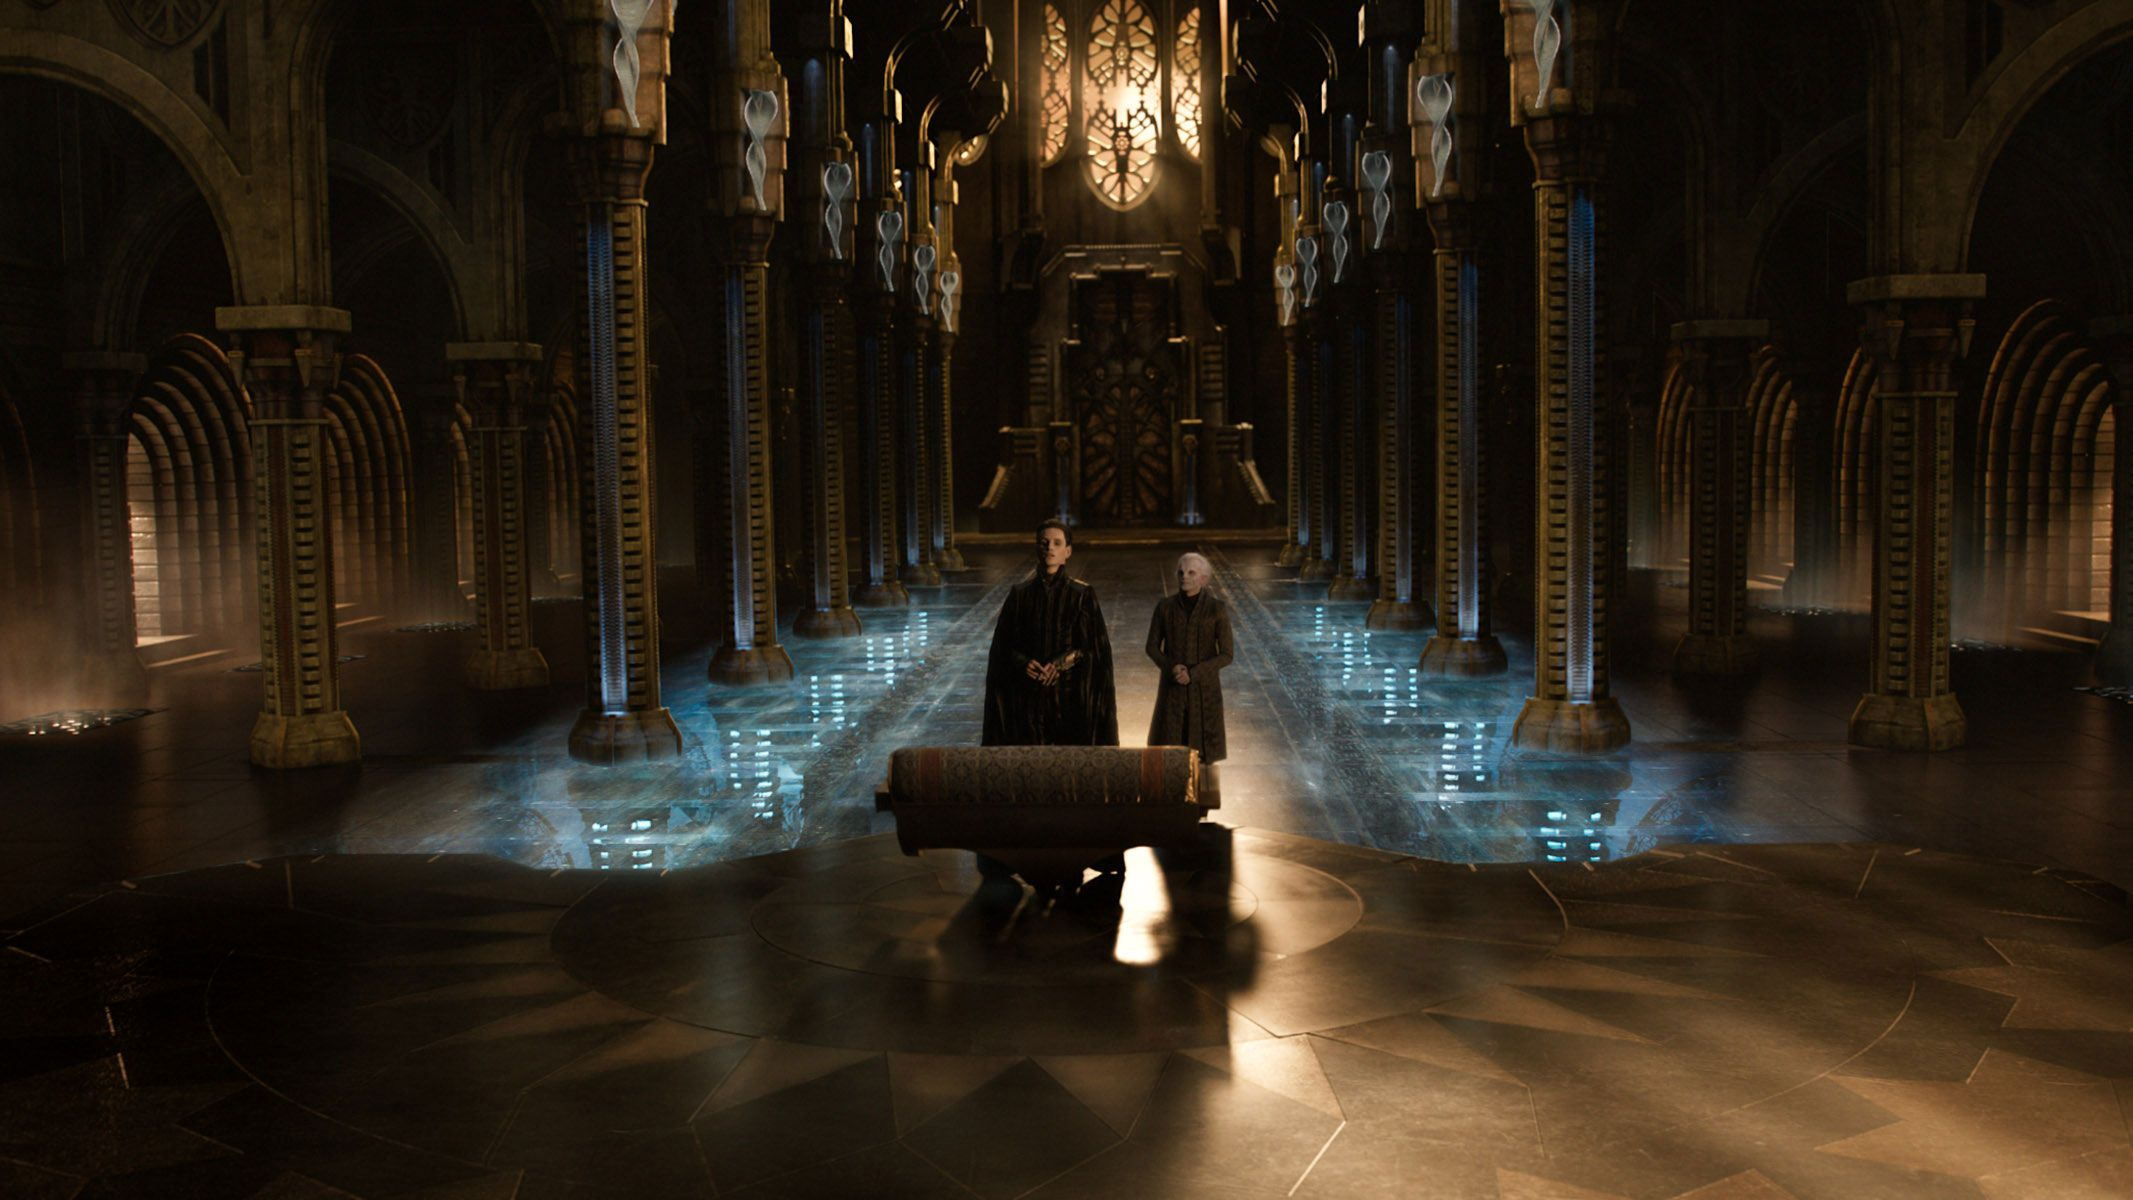 Jupiter Ascending Images Featuring Mila Kunis and Unusual ...